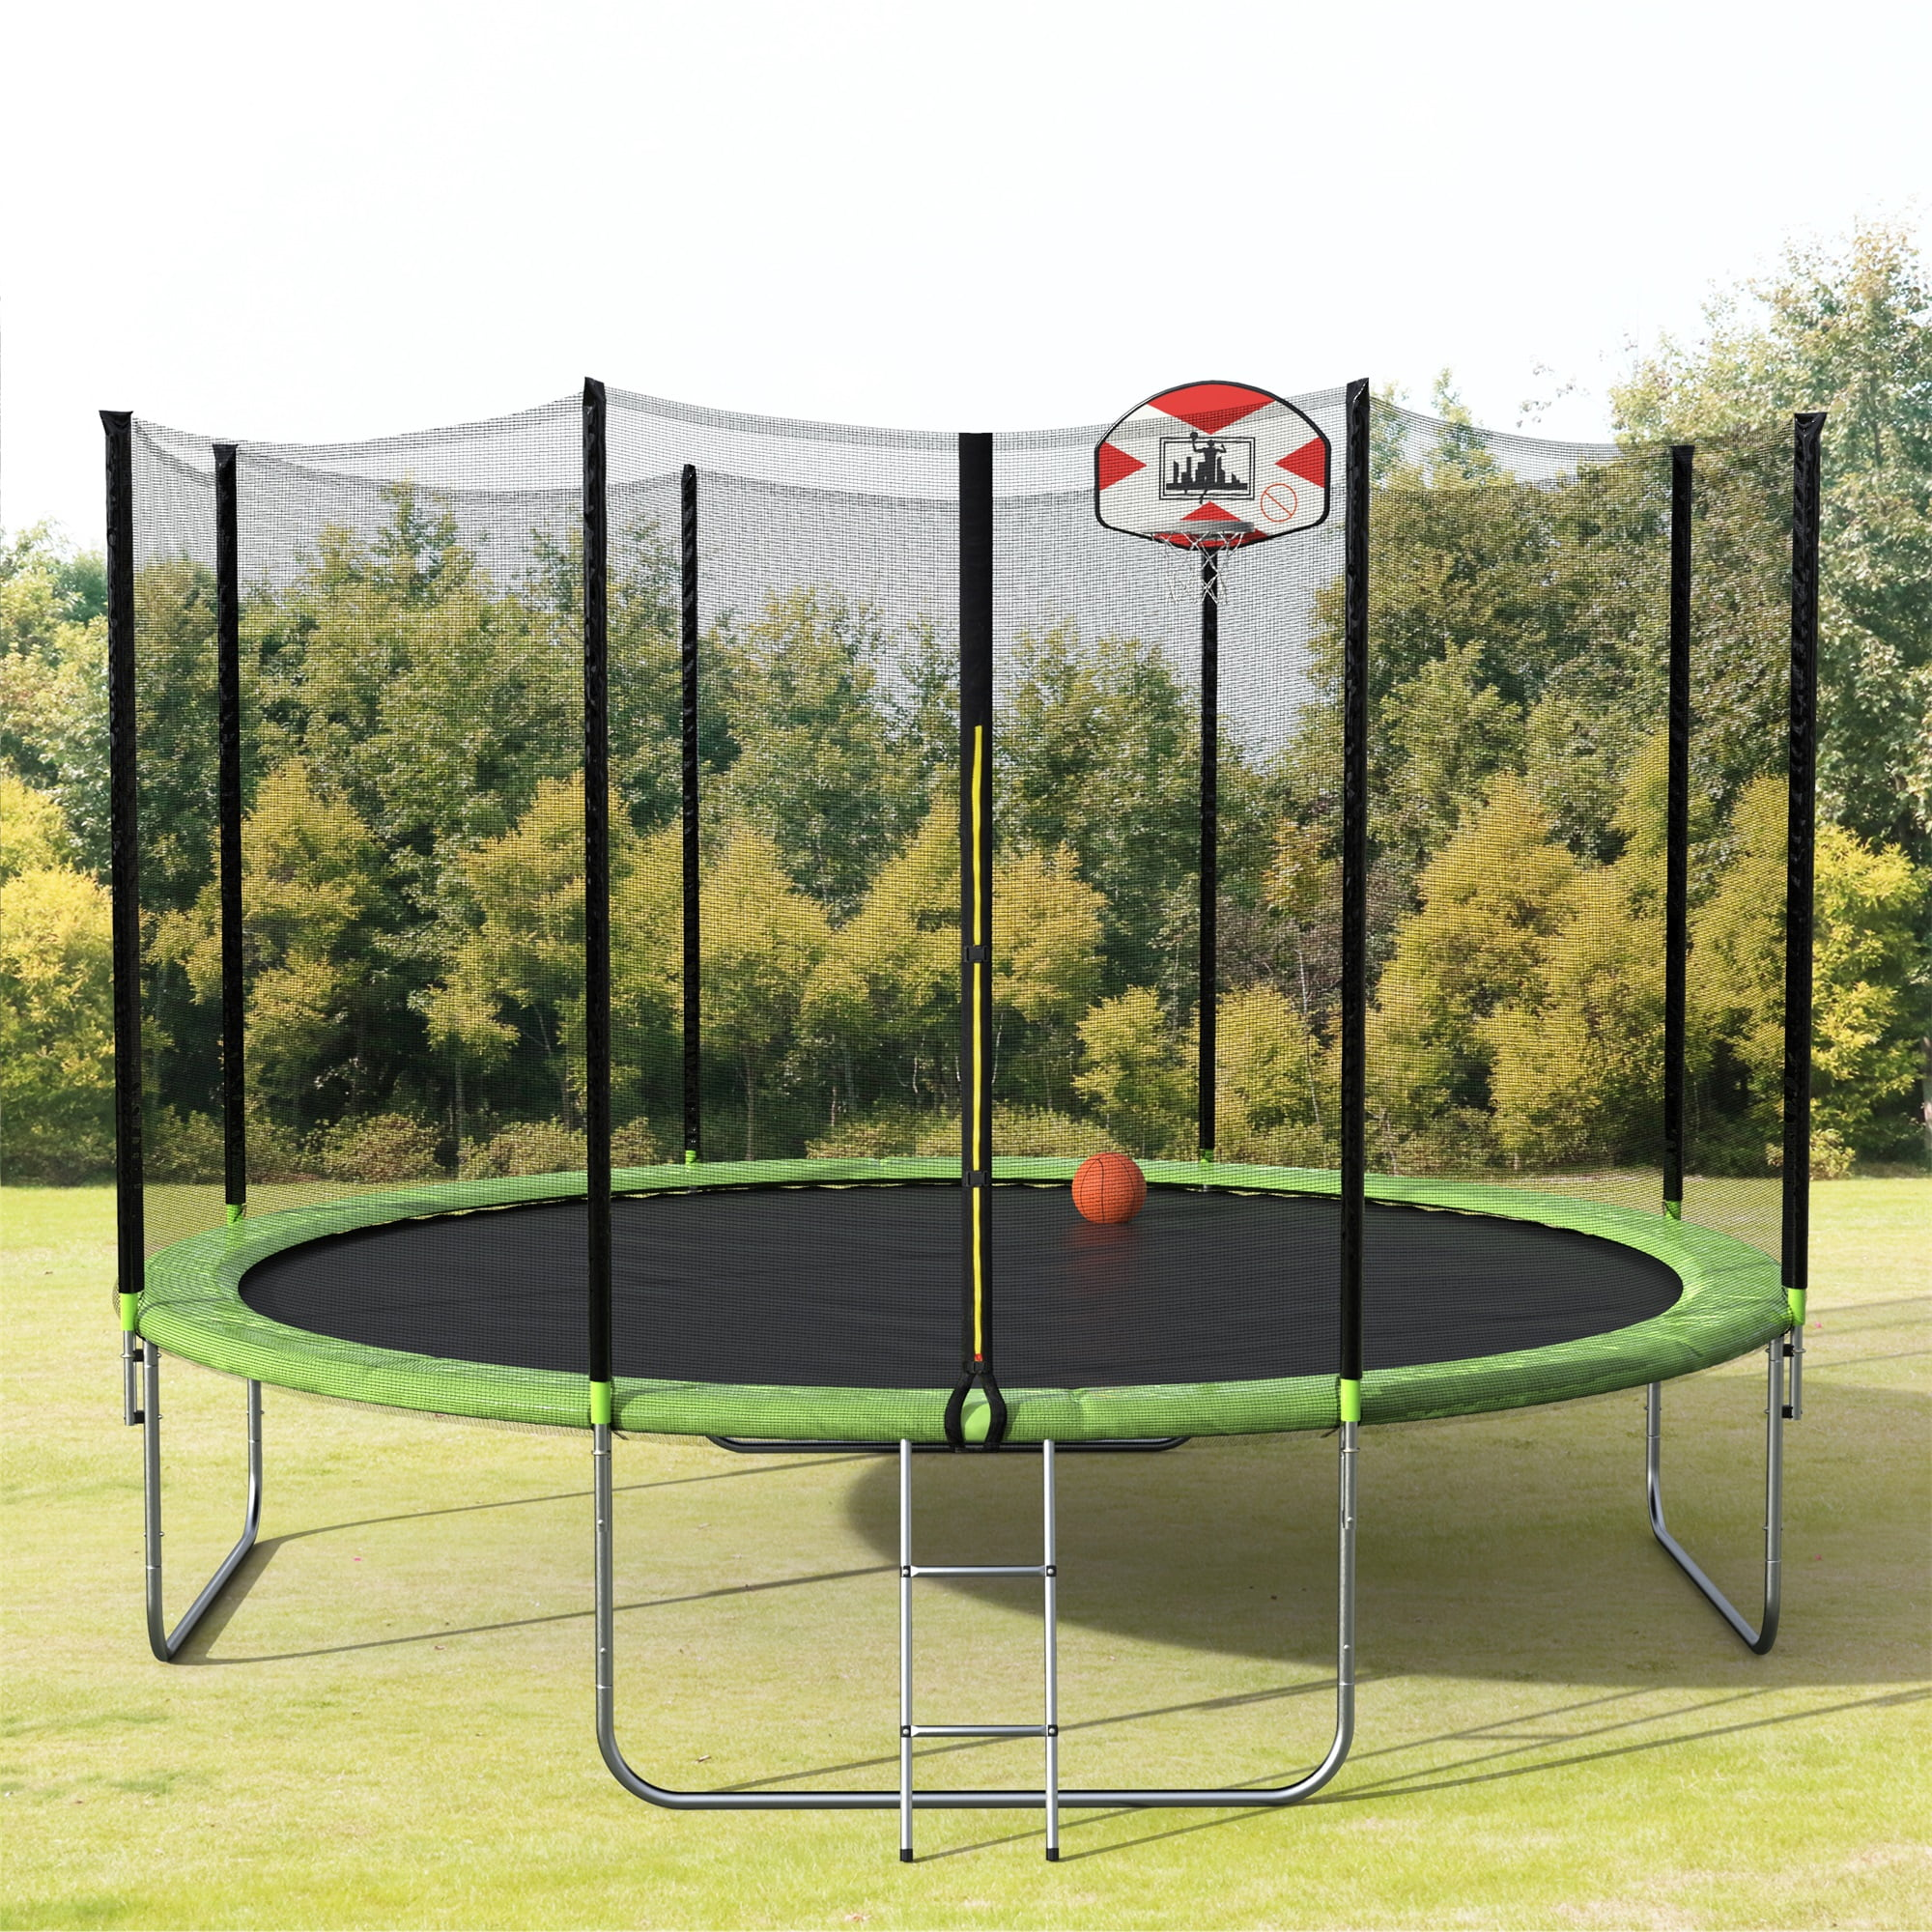 14-Feet Round Trampoline with Safety Enclosure, Basketball Hoop and Ladder